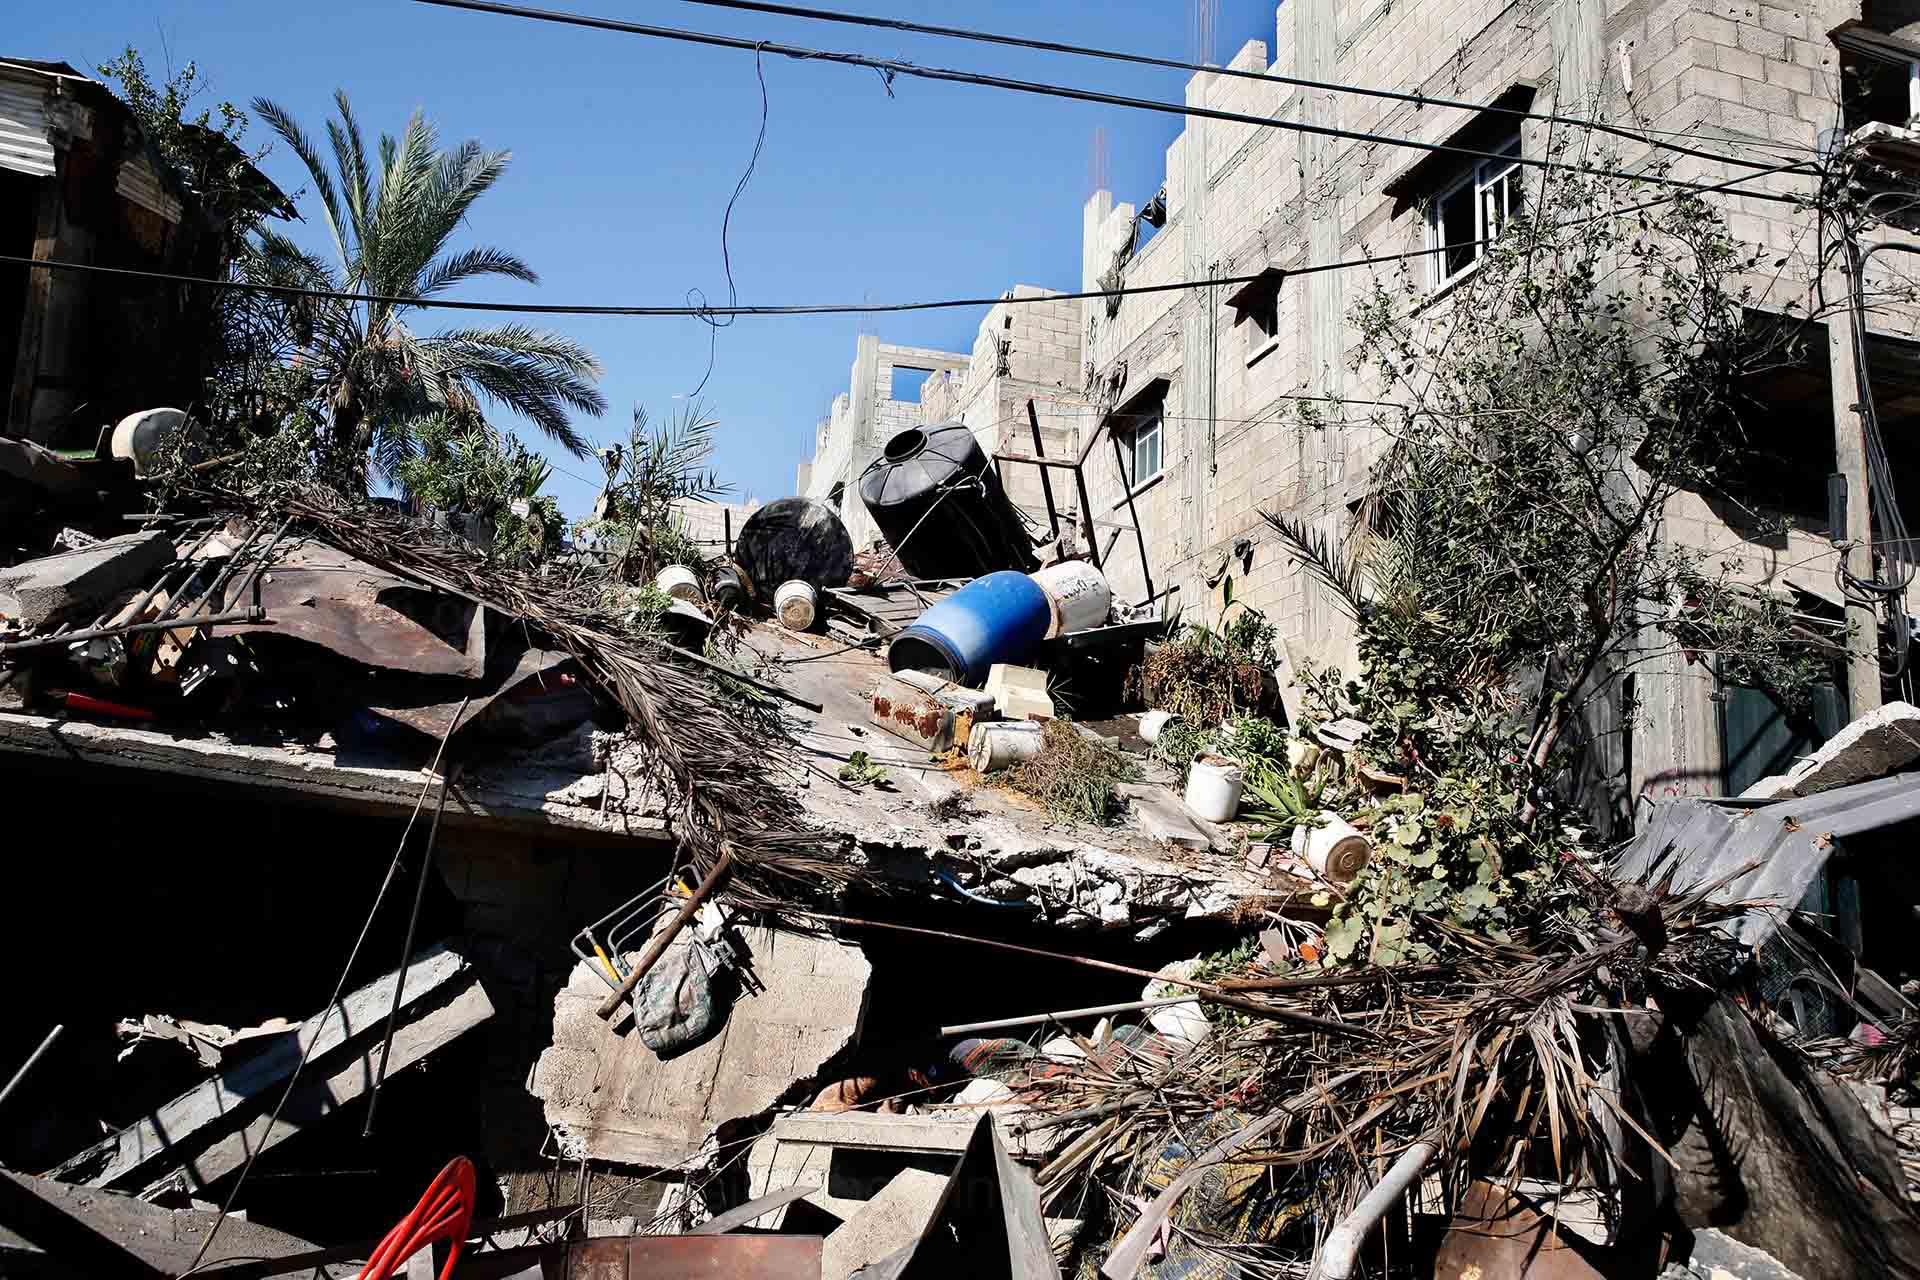 On July 23, ICRC entered the bombed out neighbourhood of Shujayea to evacuate the injured and besieged. Gaza July 2014